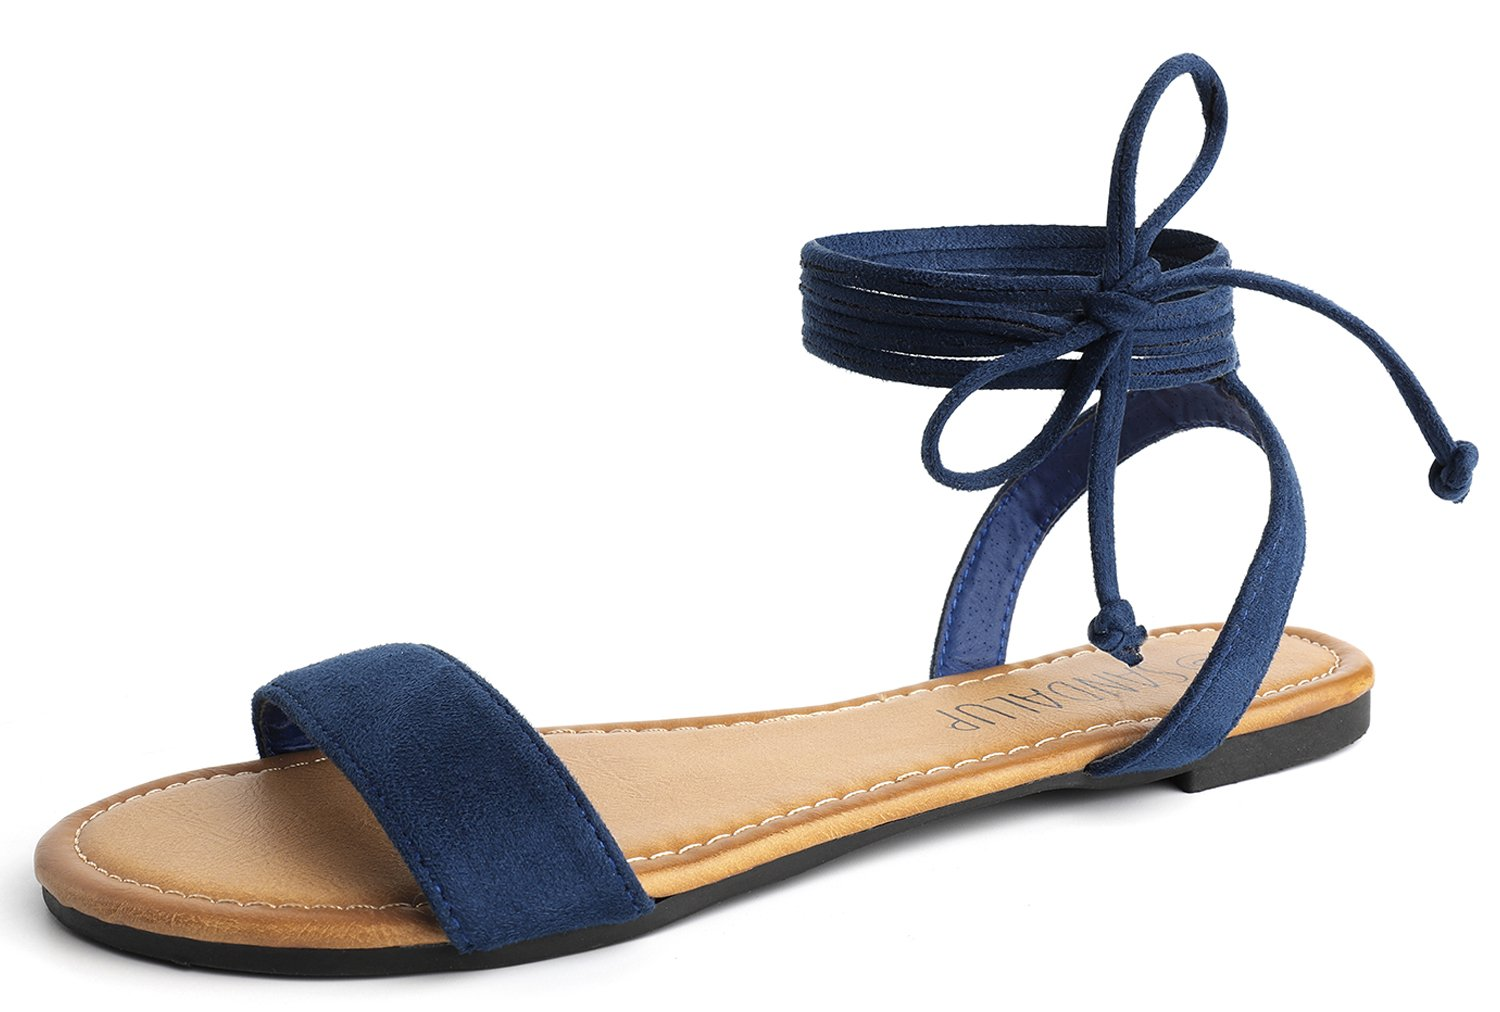 SANDALUP Tie up Ankle Strap Flat Sandals for Women Navy Blue 07